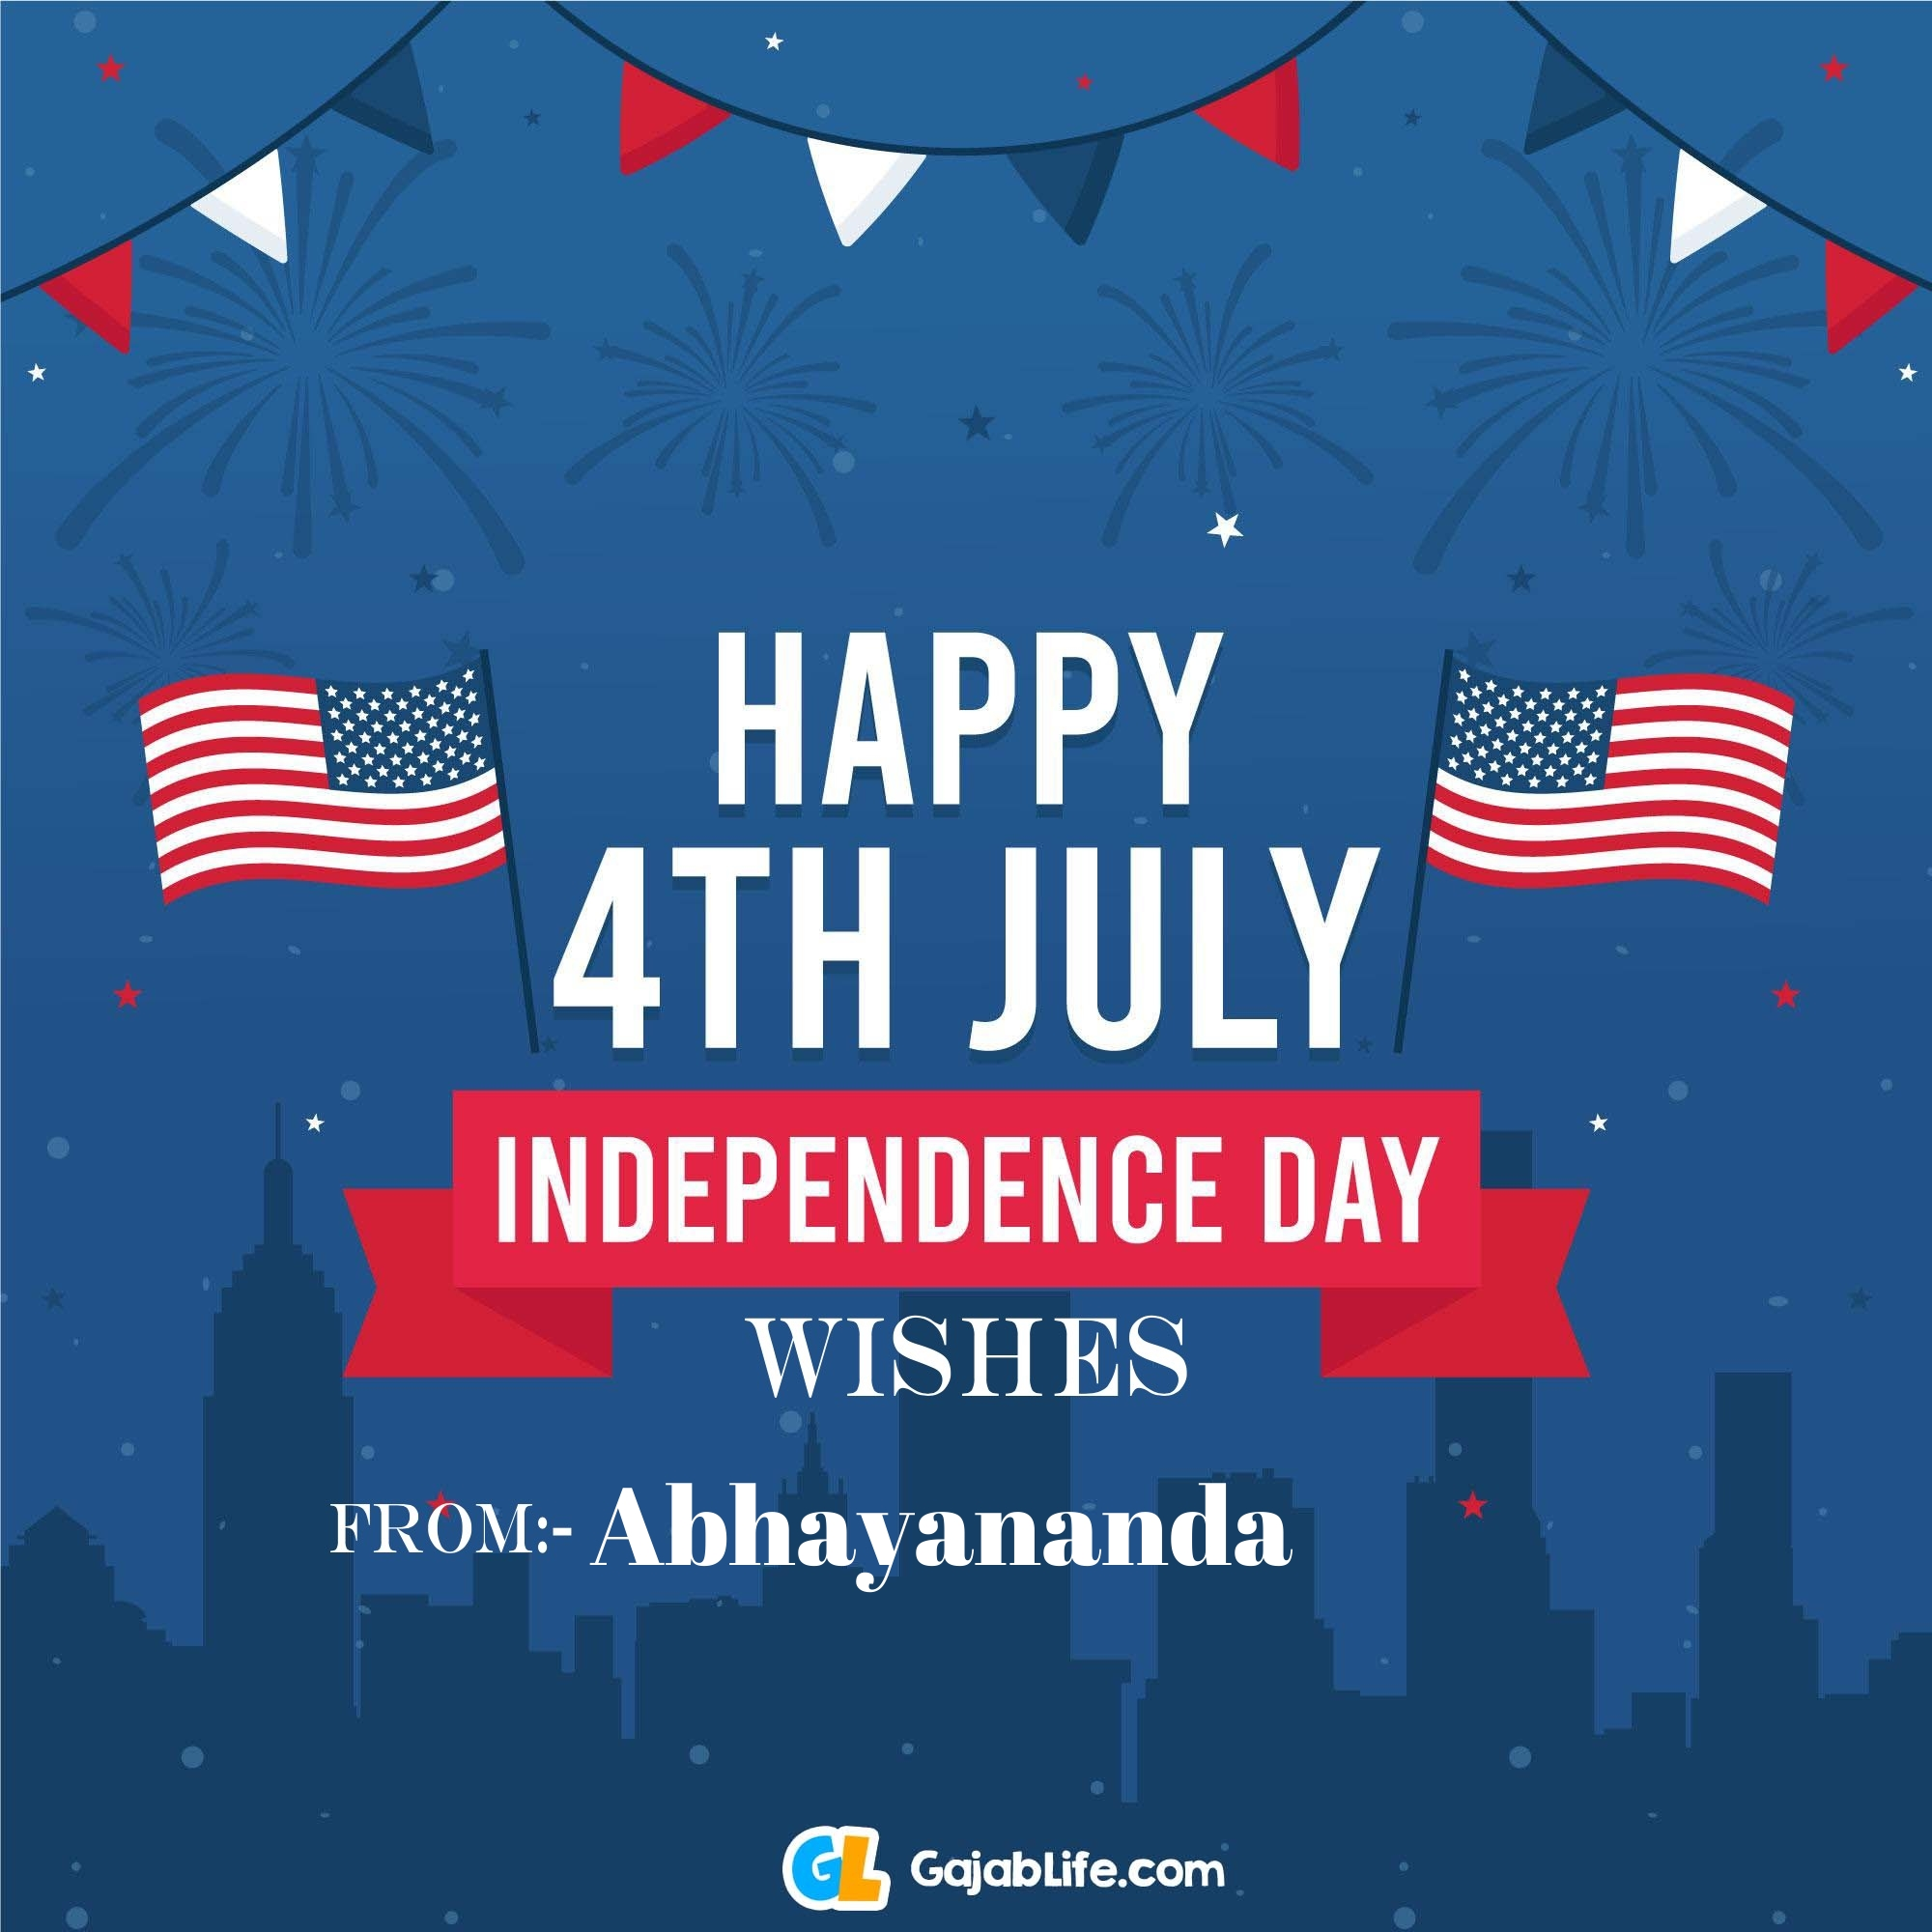 Abhayananda happy independence day united states of america images